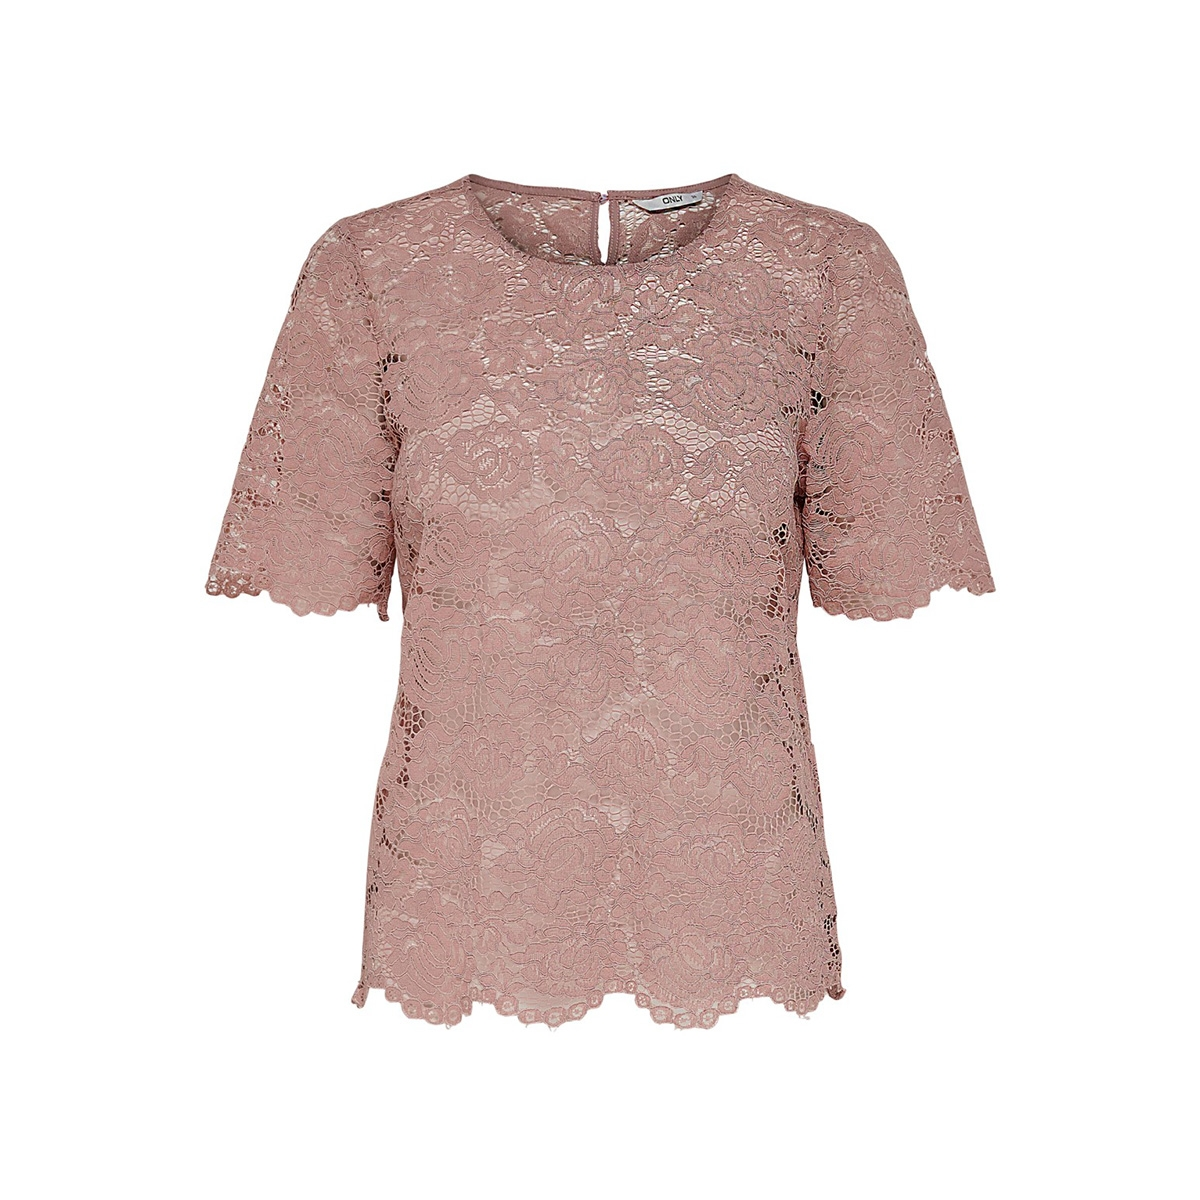 onlalexandra s/s top wvn 15171234 only t-shirt adobe rose